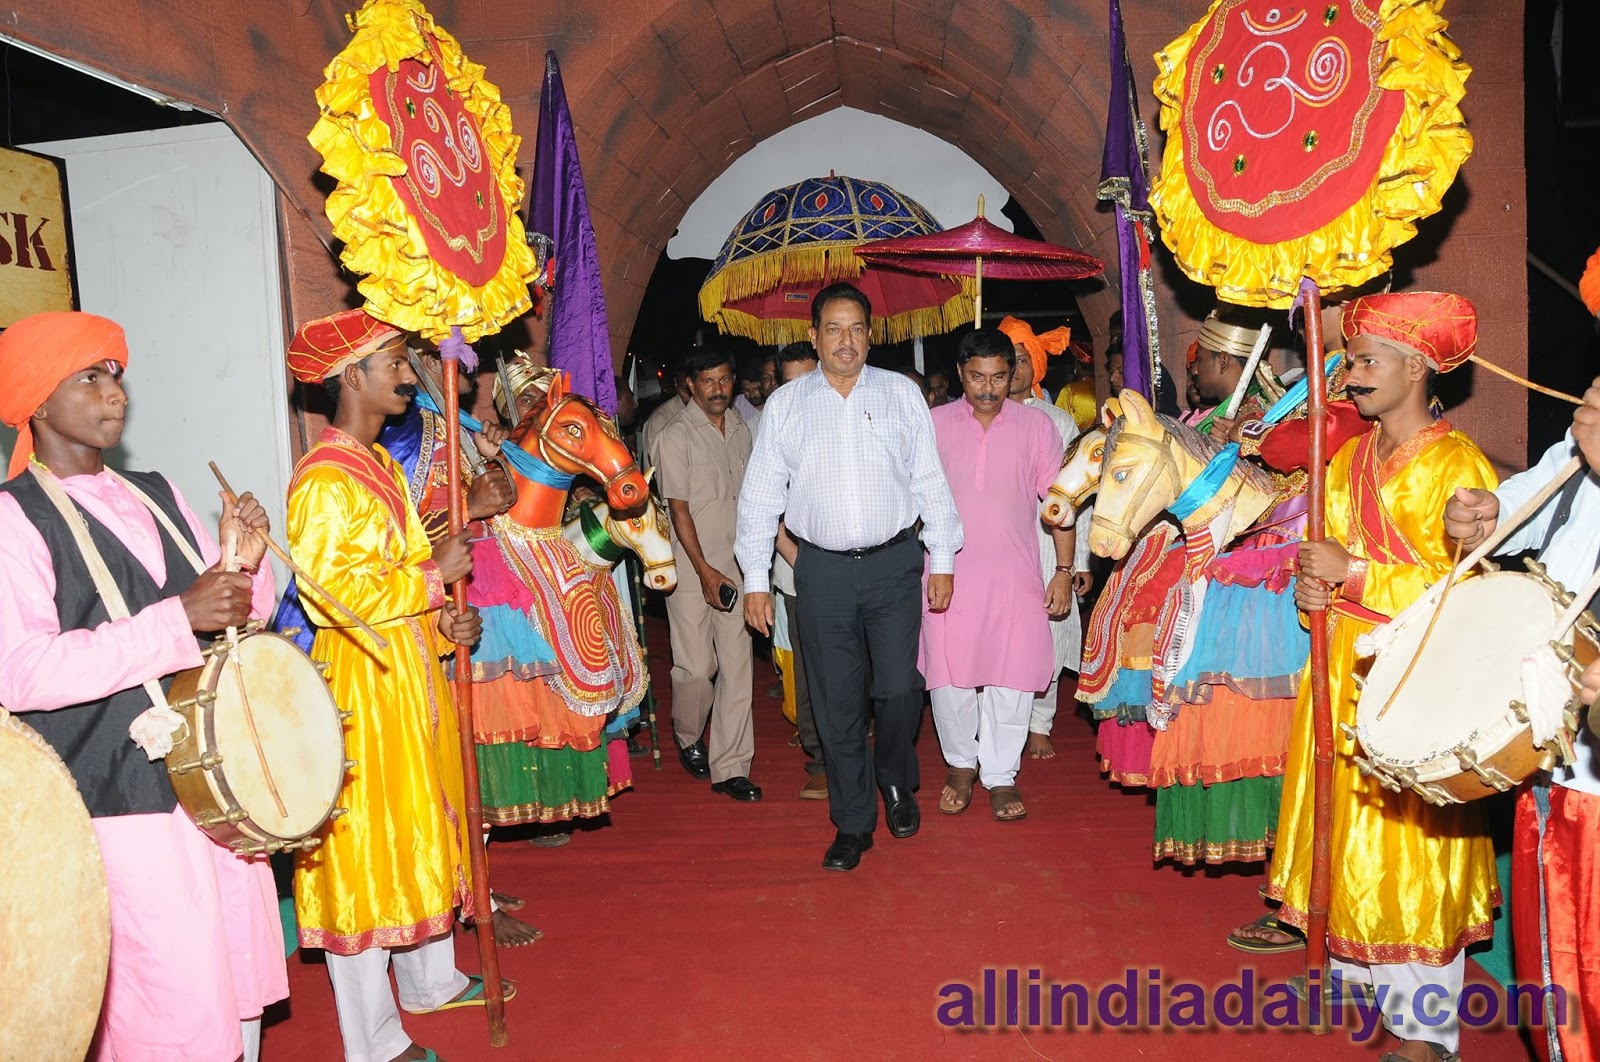 Deputy Chief Minister, Mr. Francis Dsouza and Mr. Dilip Parulekar, Tourism Minister, inaugrating the festival